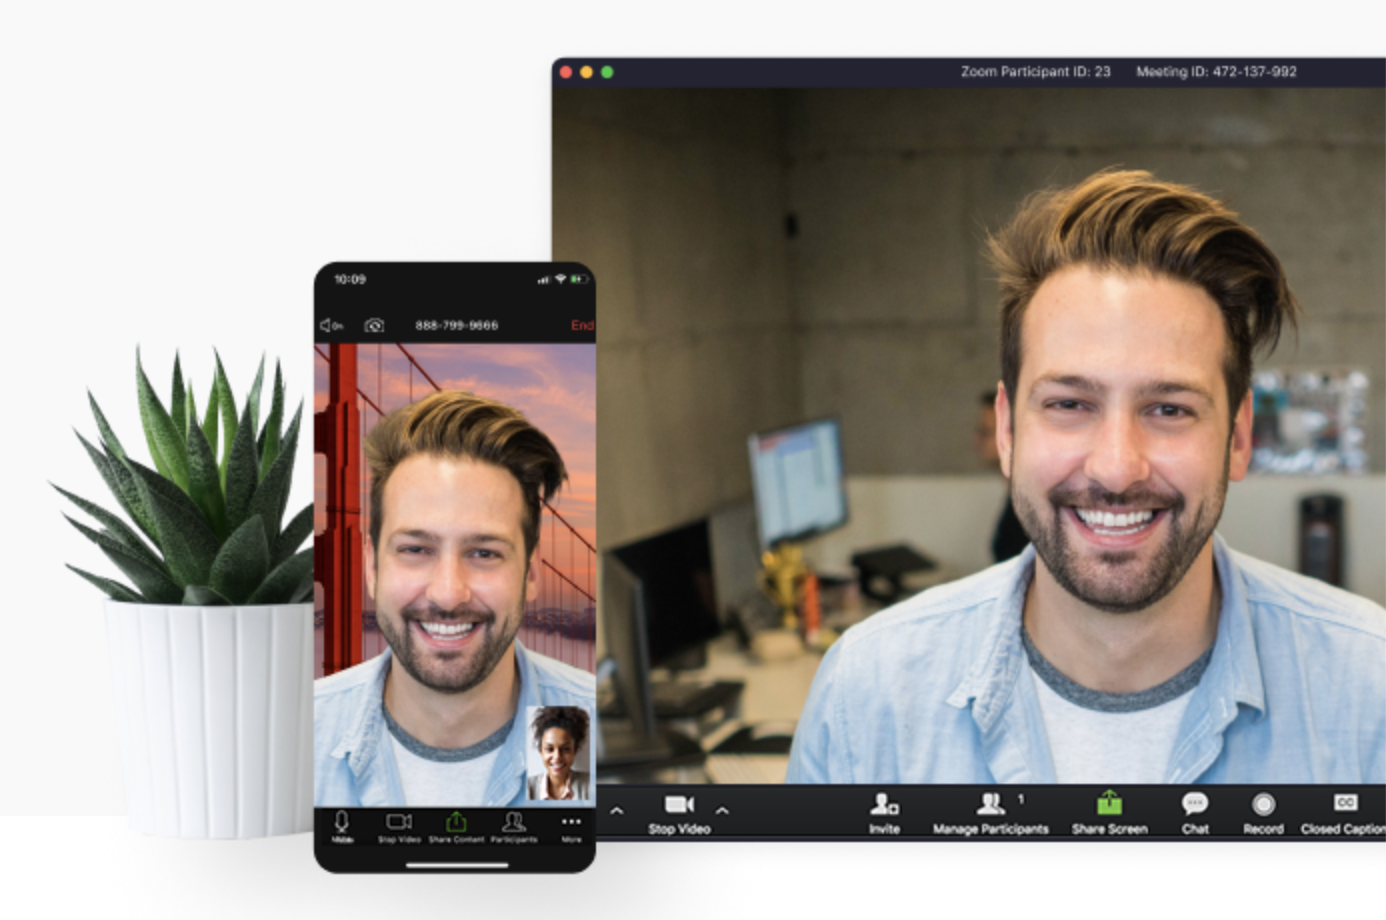 Zoom meeting on mobile and desktop device